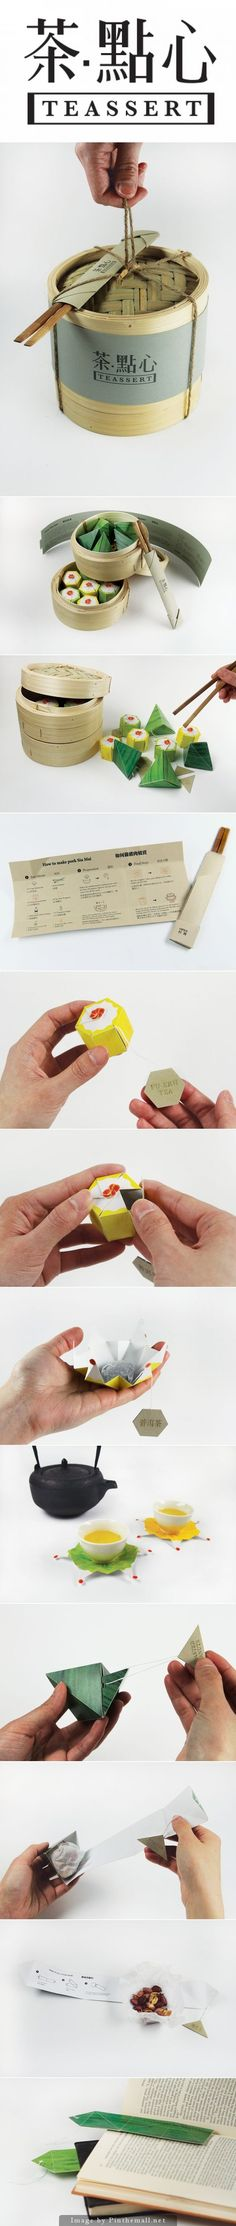 Too pretty not to share the entire Teassert #packaging pin curated by Packaging Diva PD #2014 top team pin: